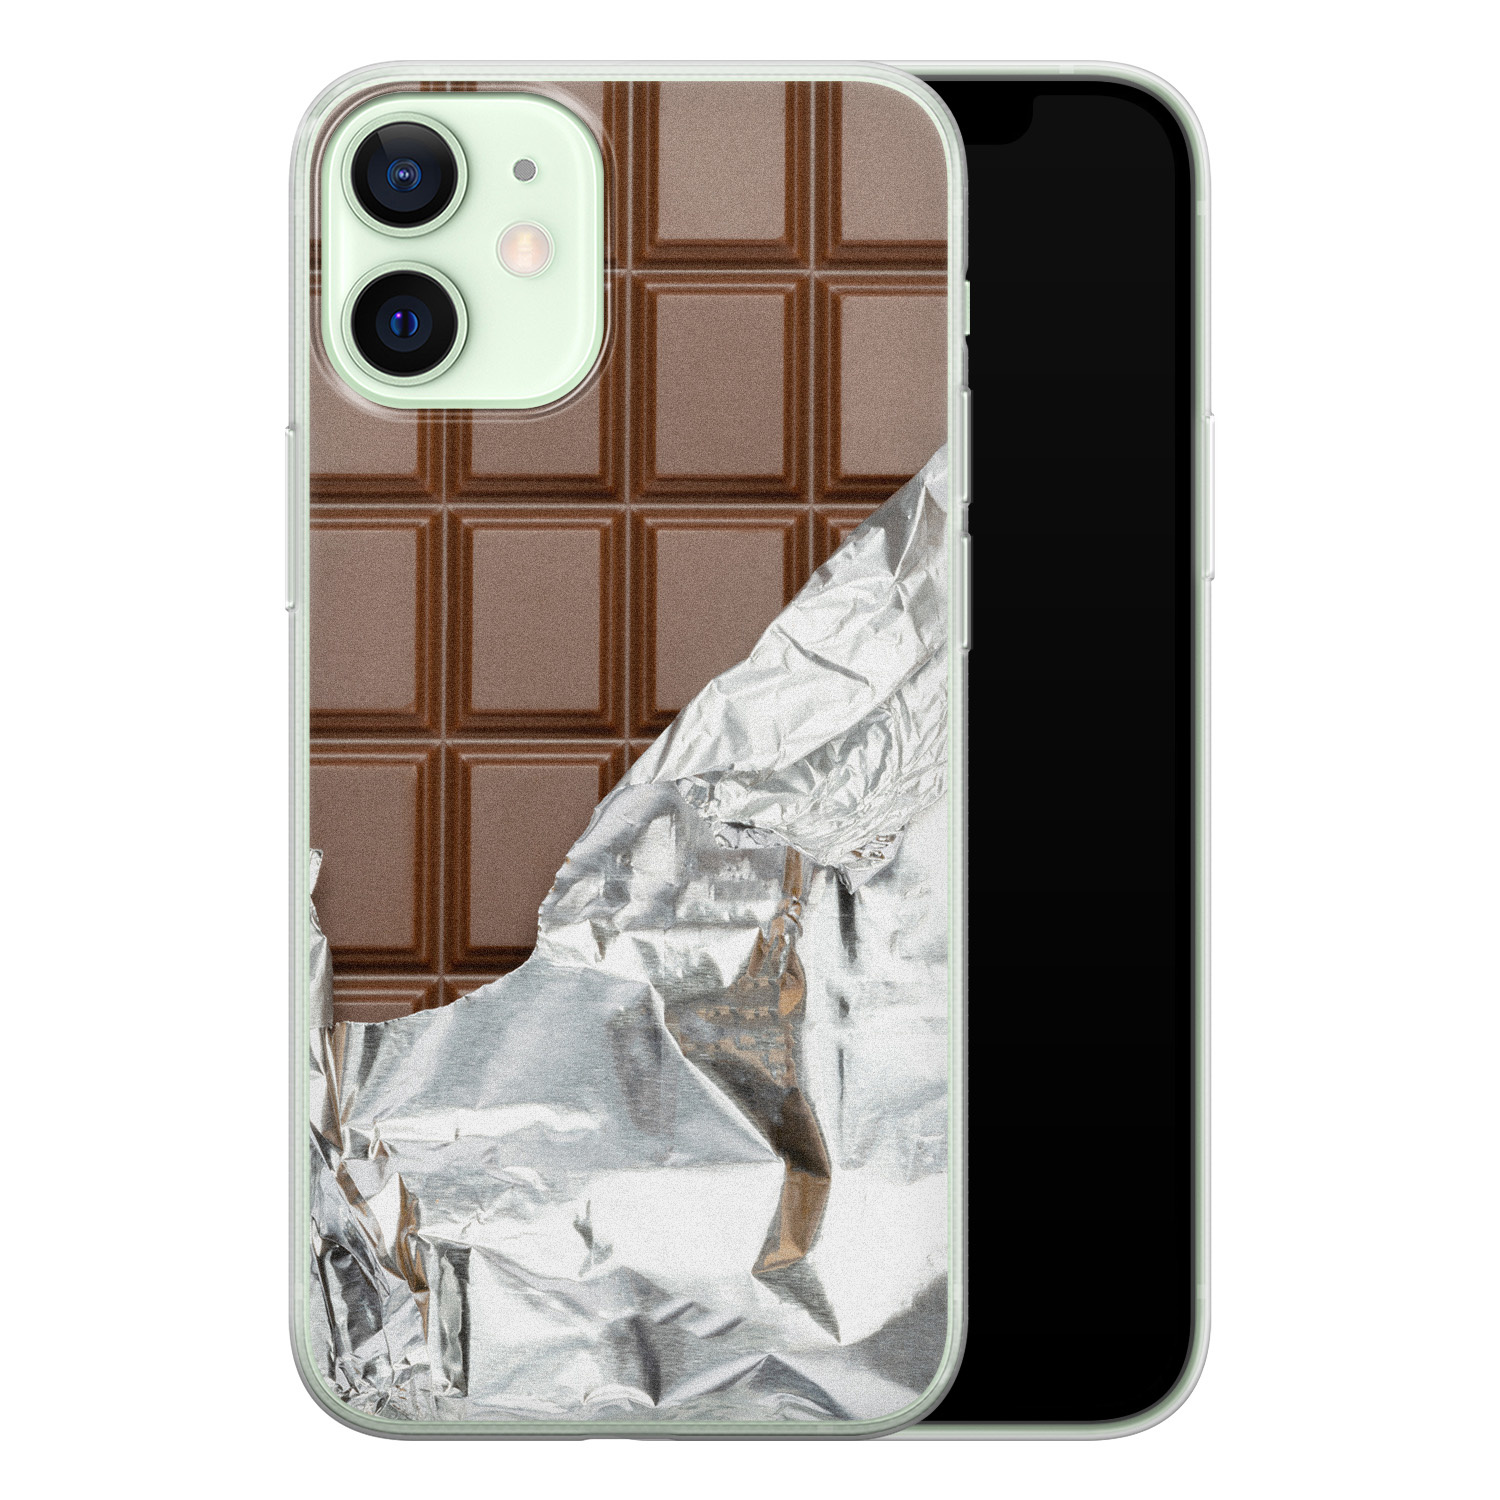 iPhone 12 mini siliconen hoesje - Chocoladereep